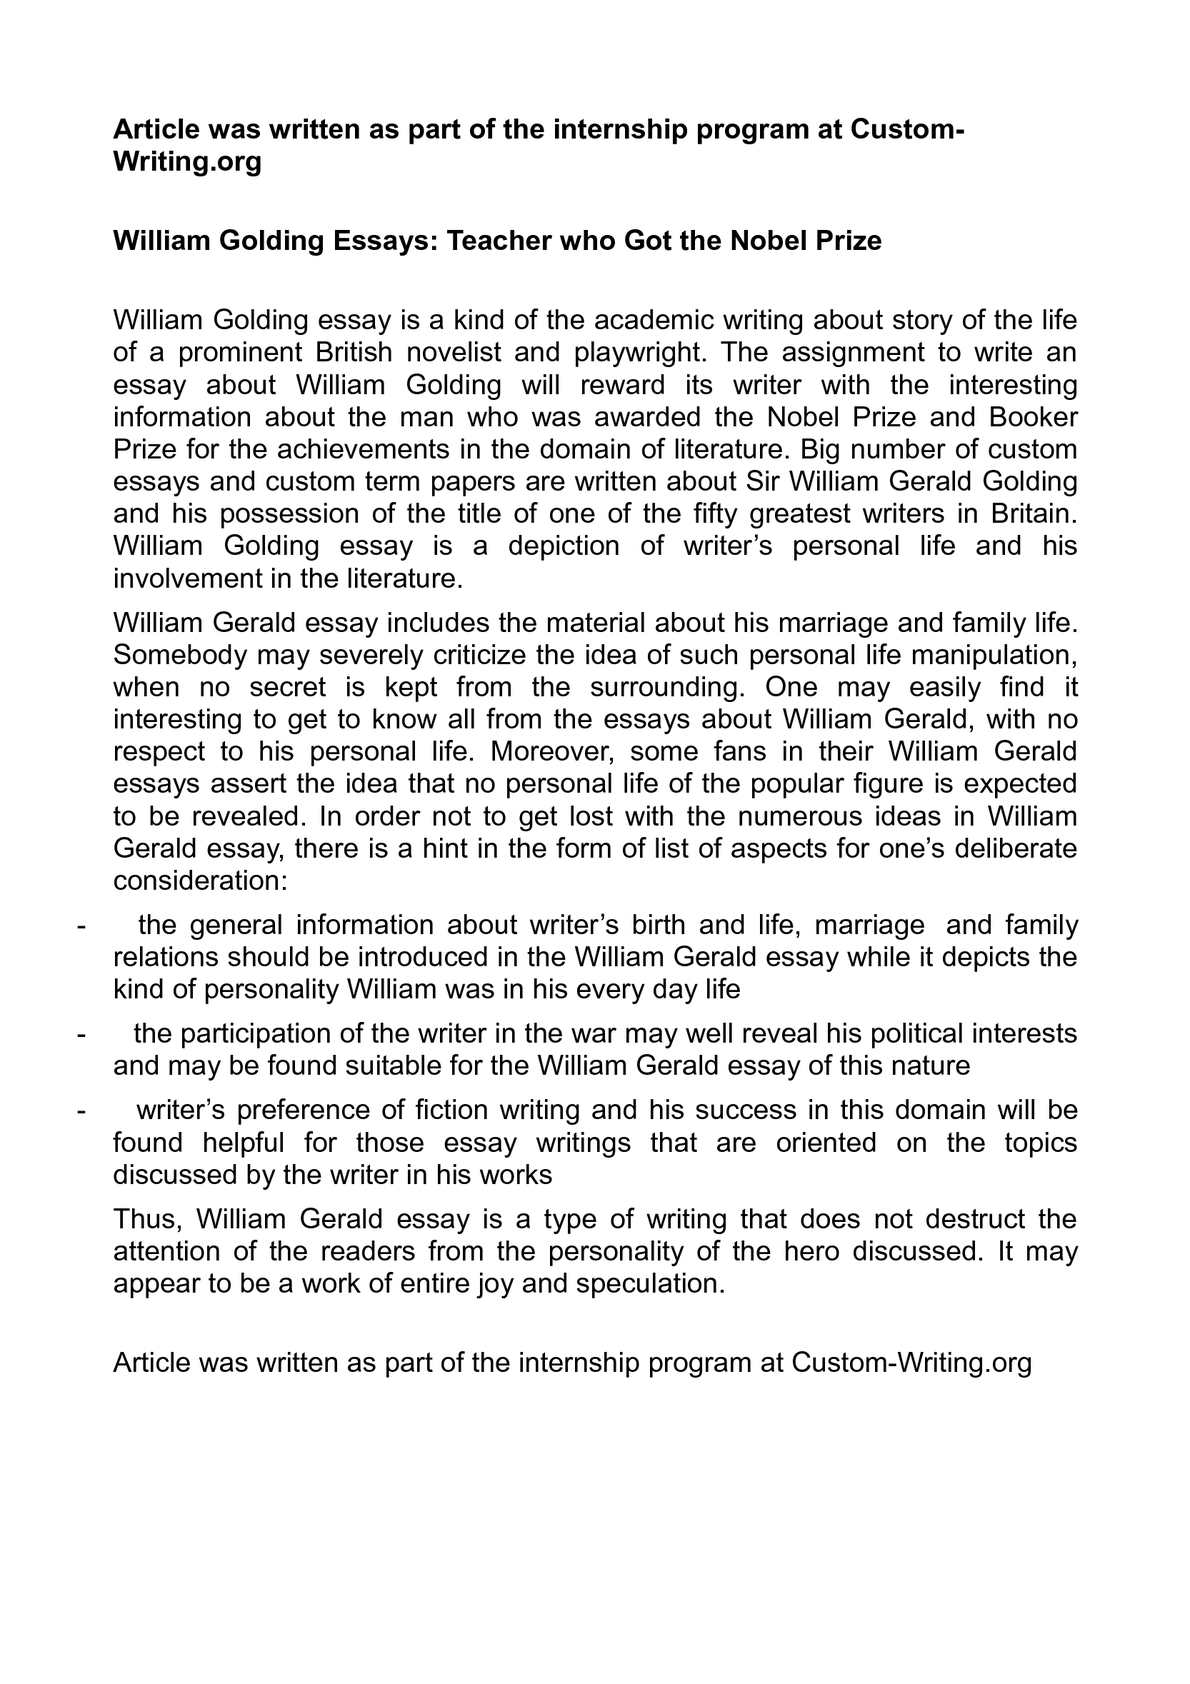 High School Experience Essay  Argumentative Essay On Health Care Reform also Essay For High School Students Calamo  William Golding Essays Teacher Who Got The Nobel Prize College Essay Paper Format